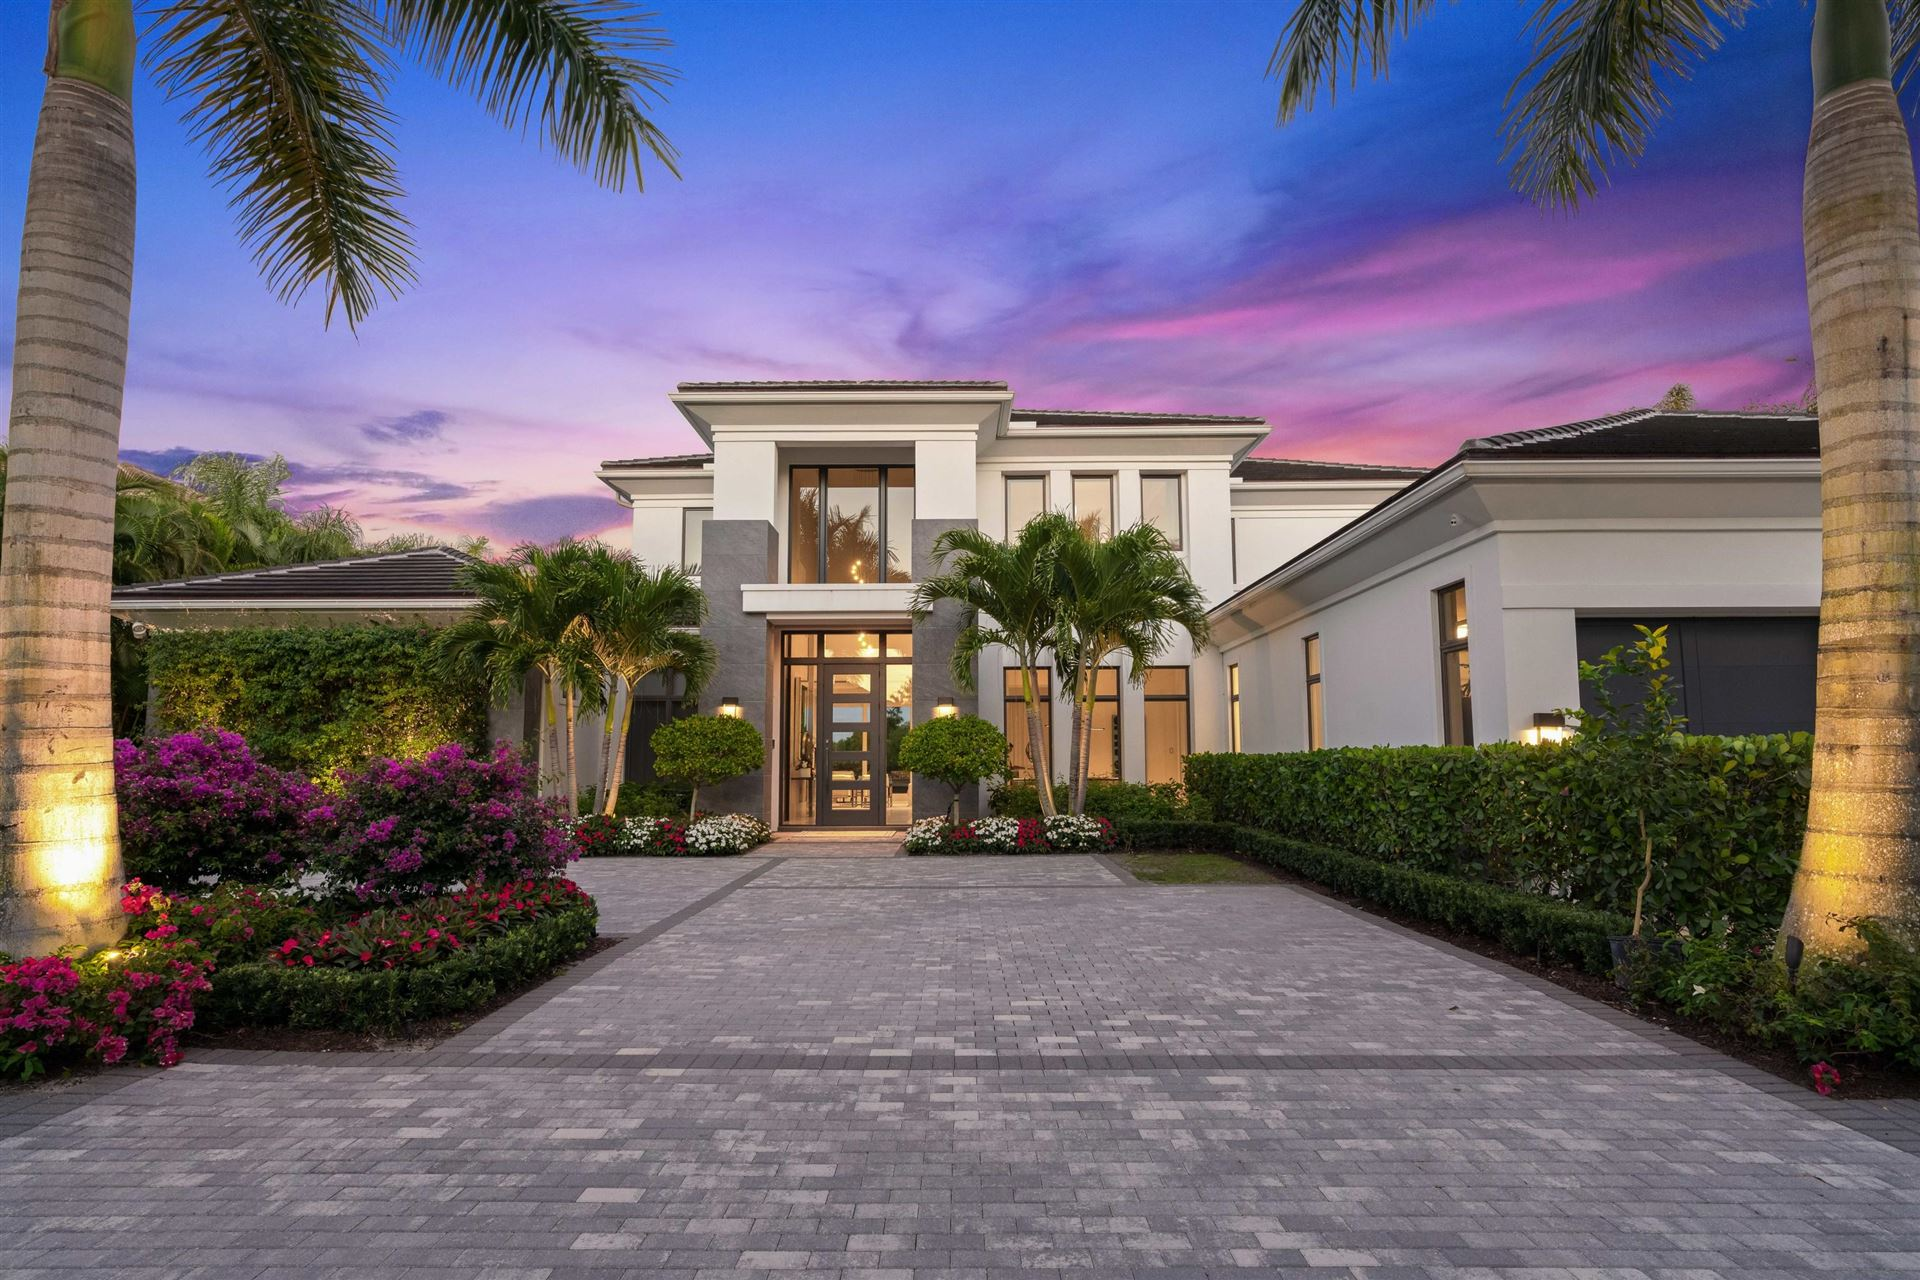 Photo of 11768 Calla Lilly Court, Palm Beach Gardens, FL 33418 (MLS # RX-10700913)